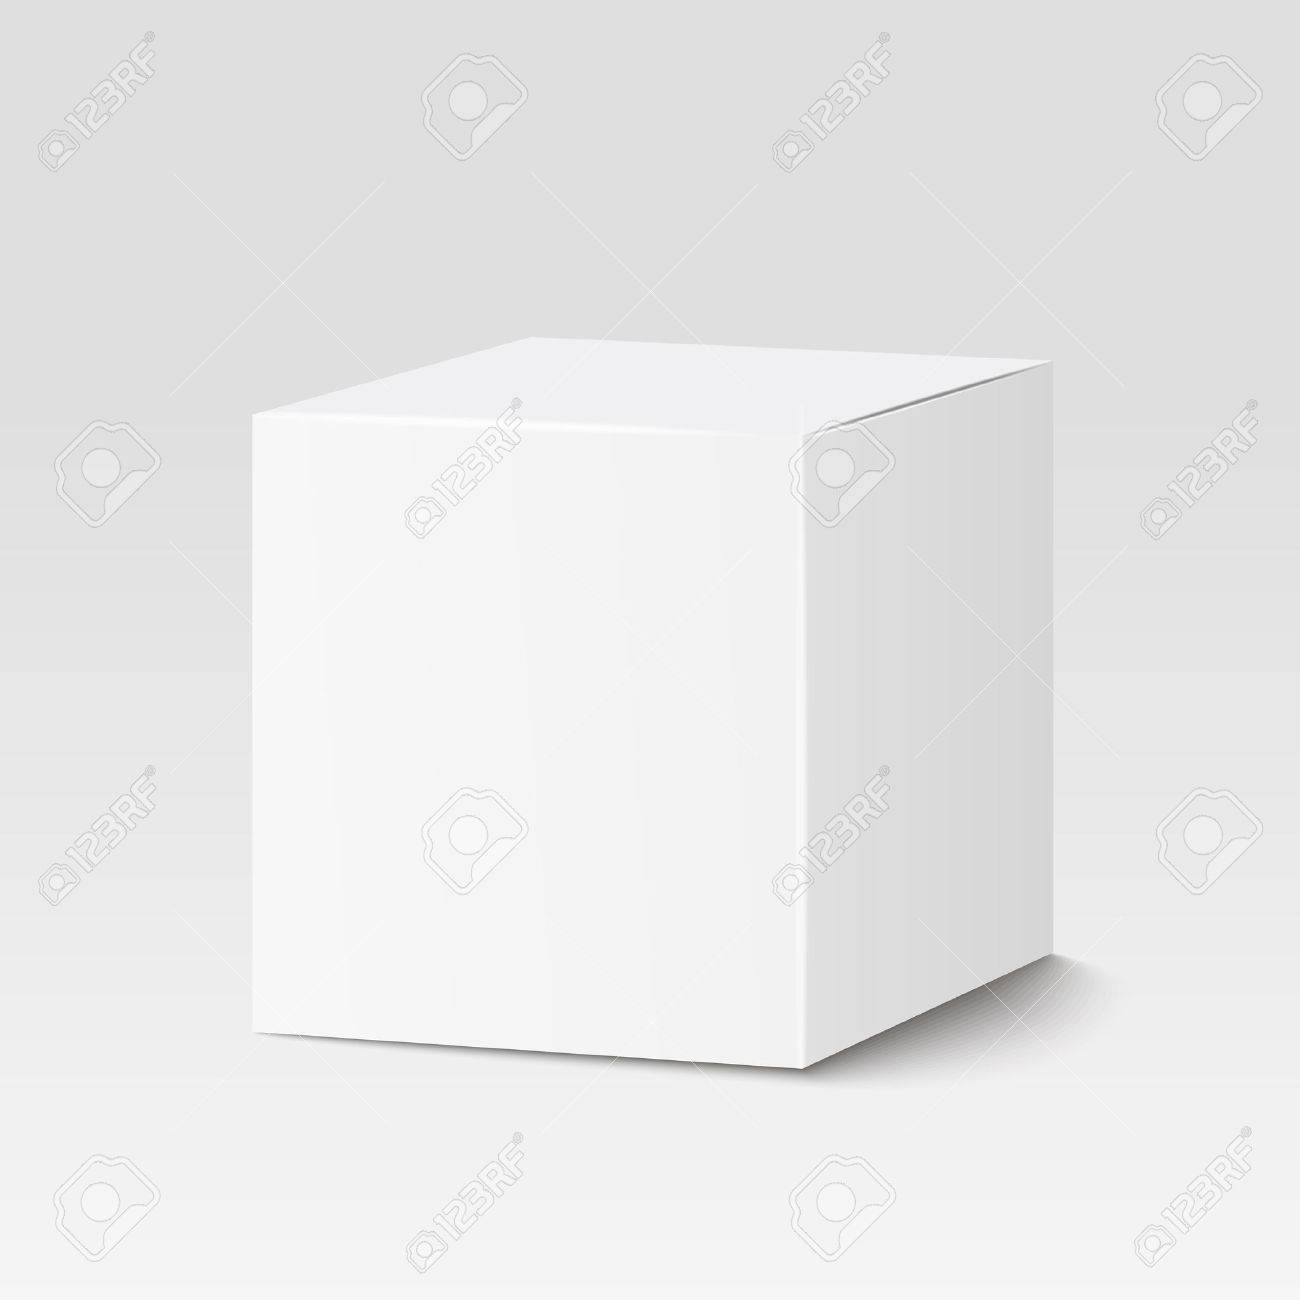 Square Box White Square Box Container Packaging